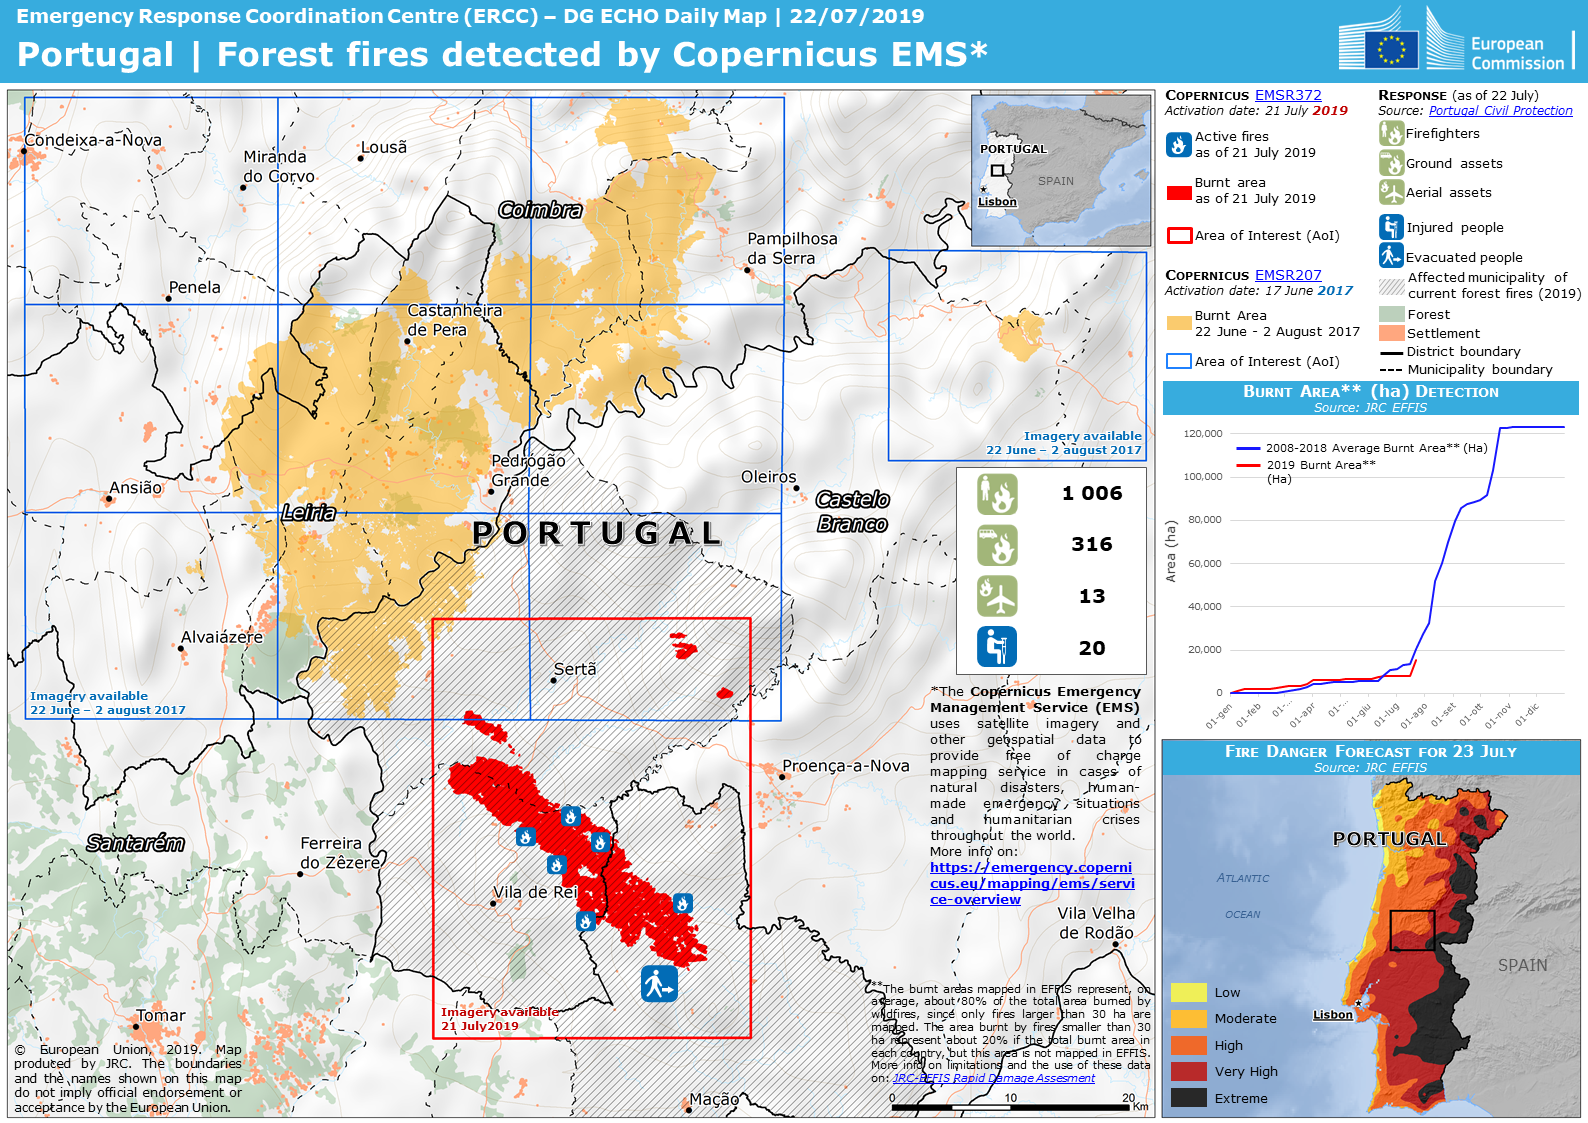 ECDM_20190722_Portugal_Forest-Fires.png